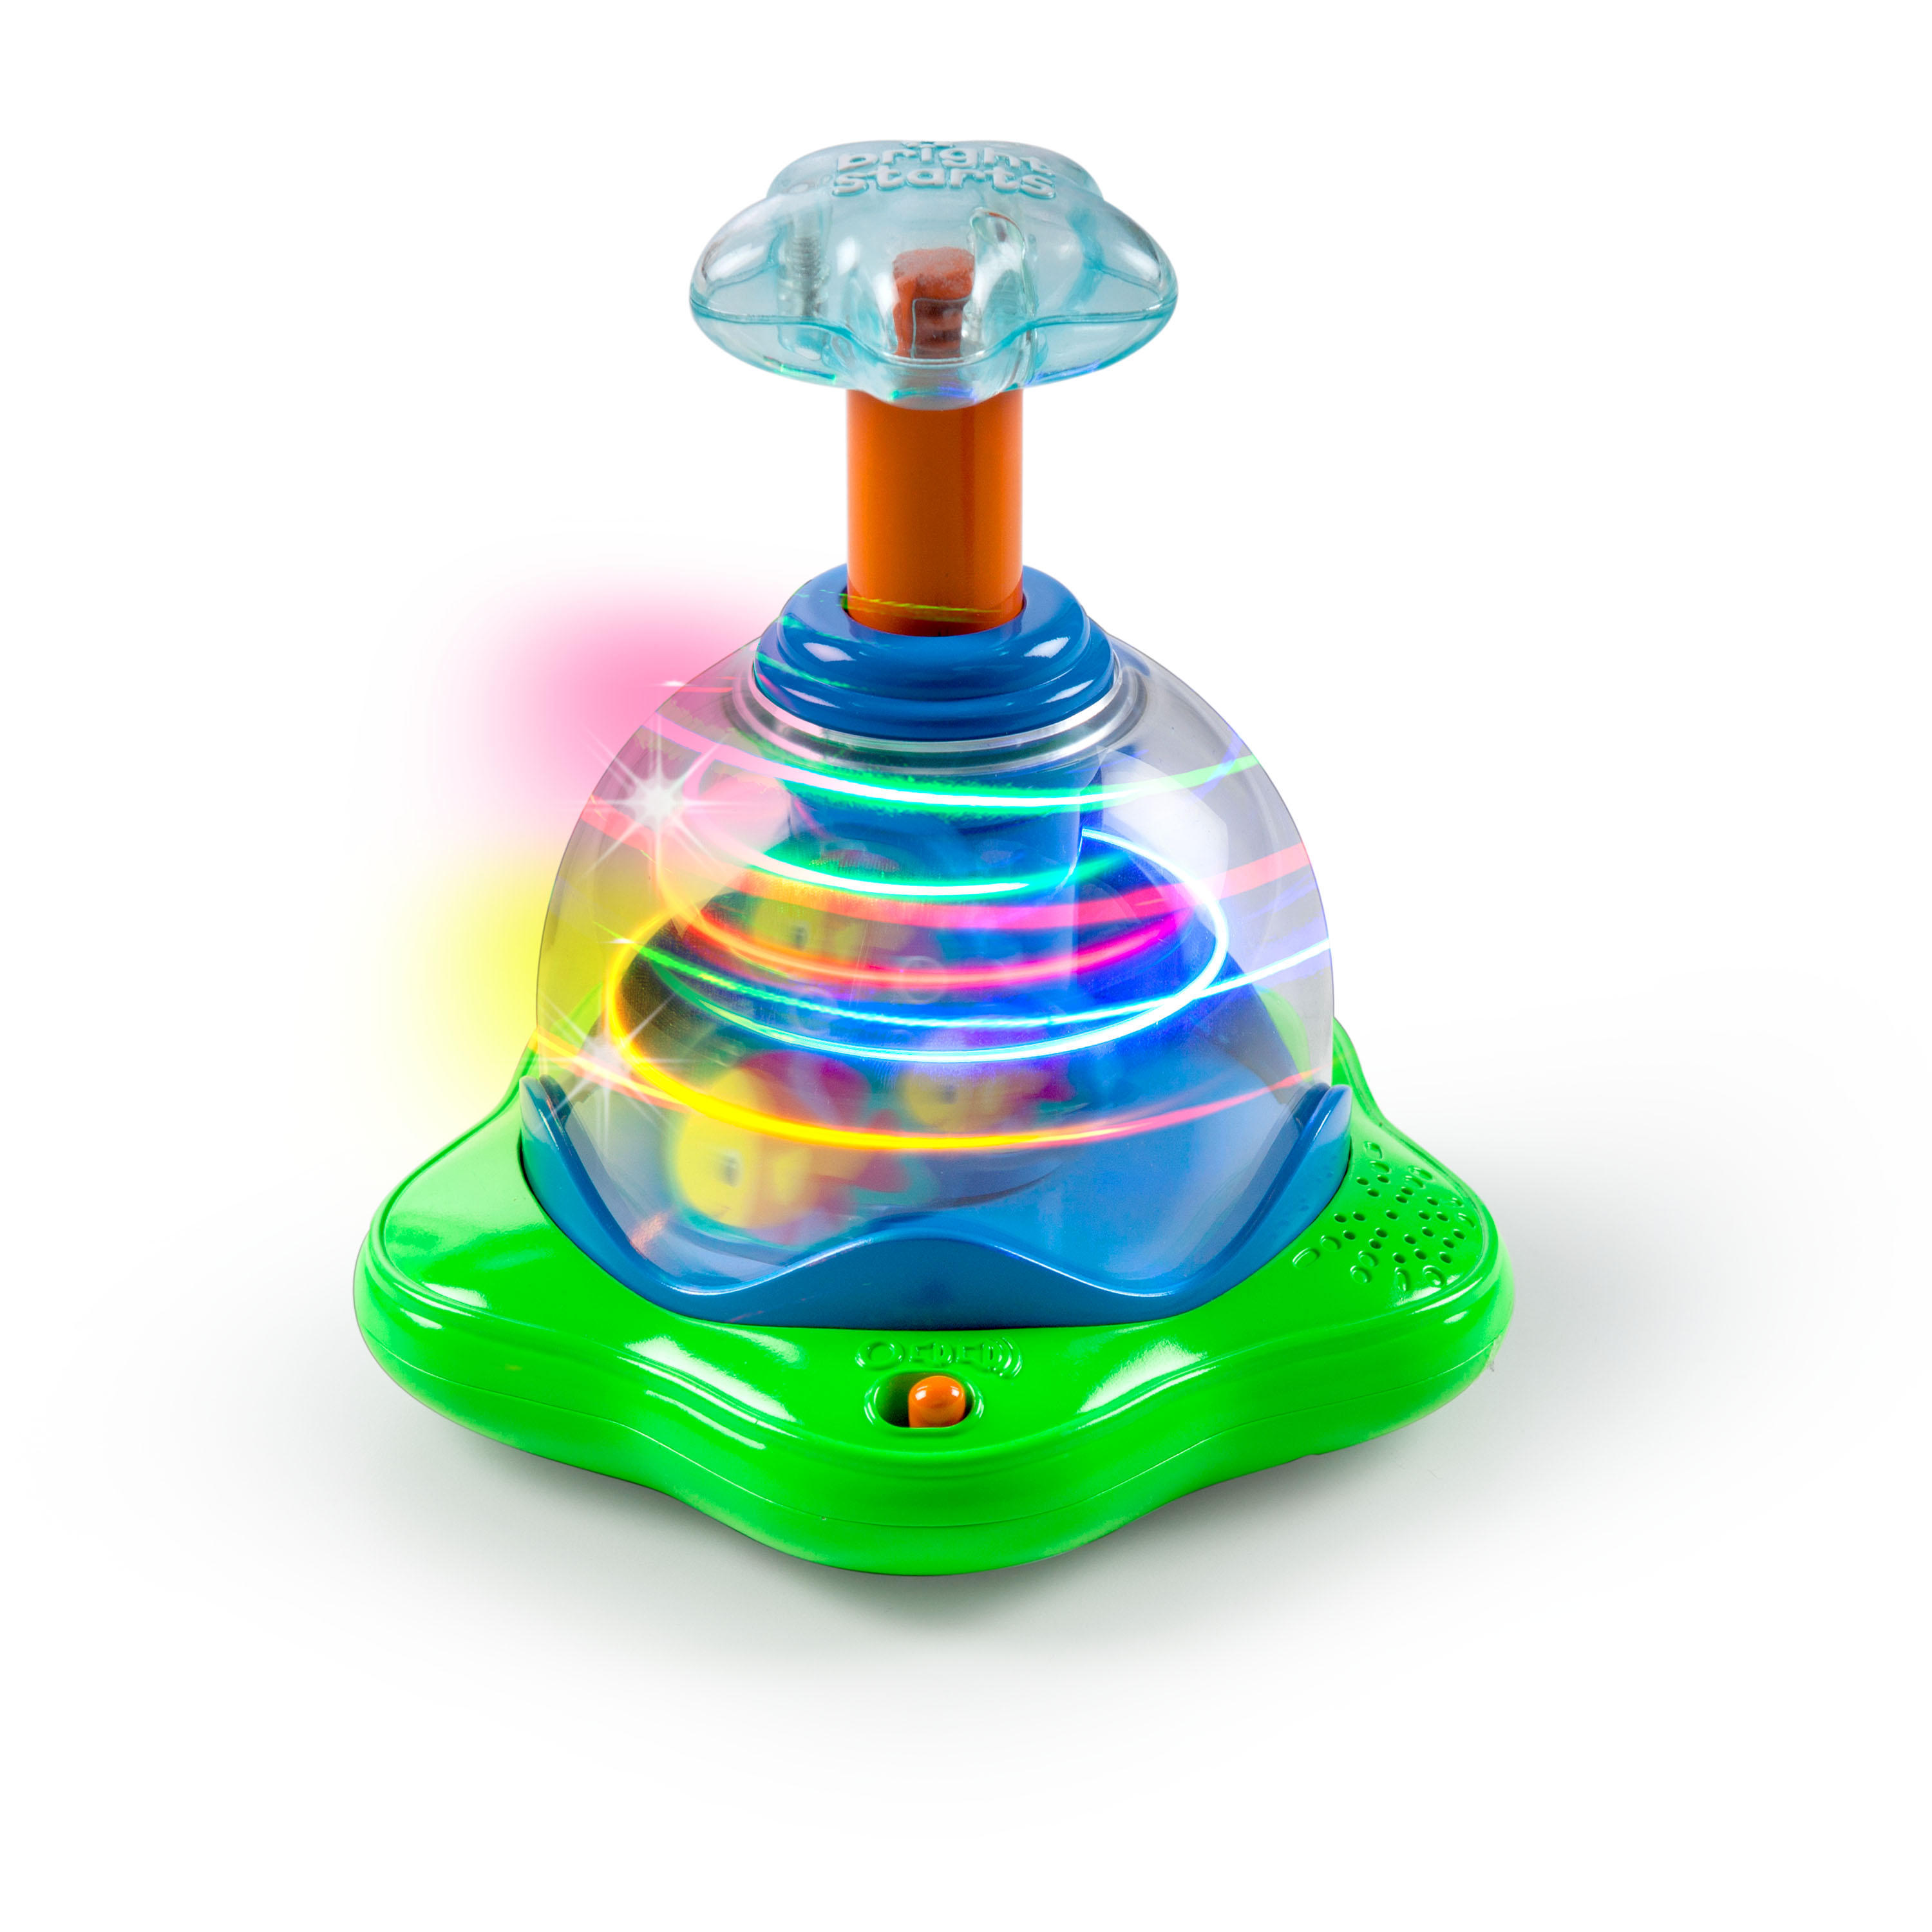 Bright Starts Press & Glow Spinner